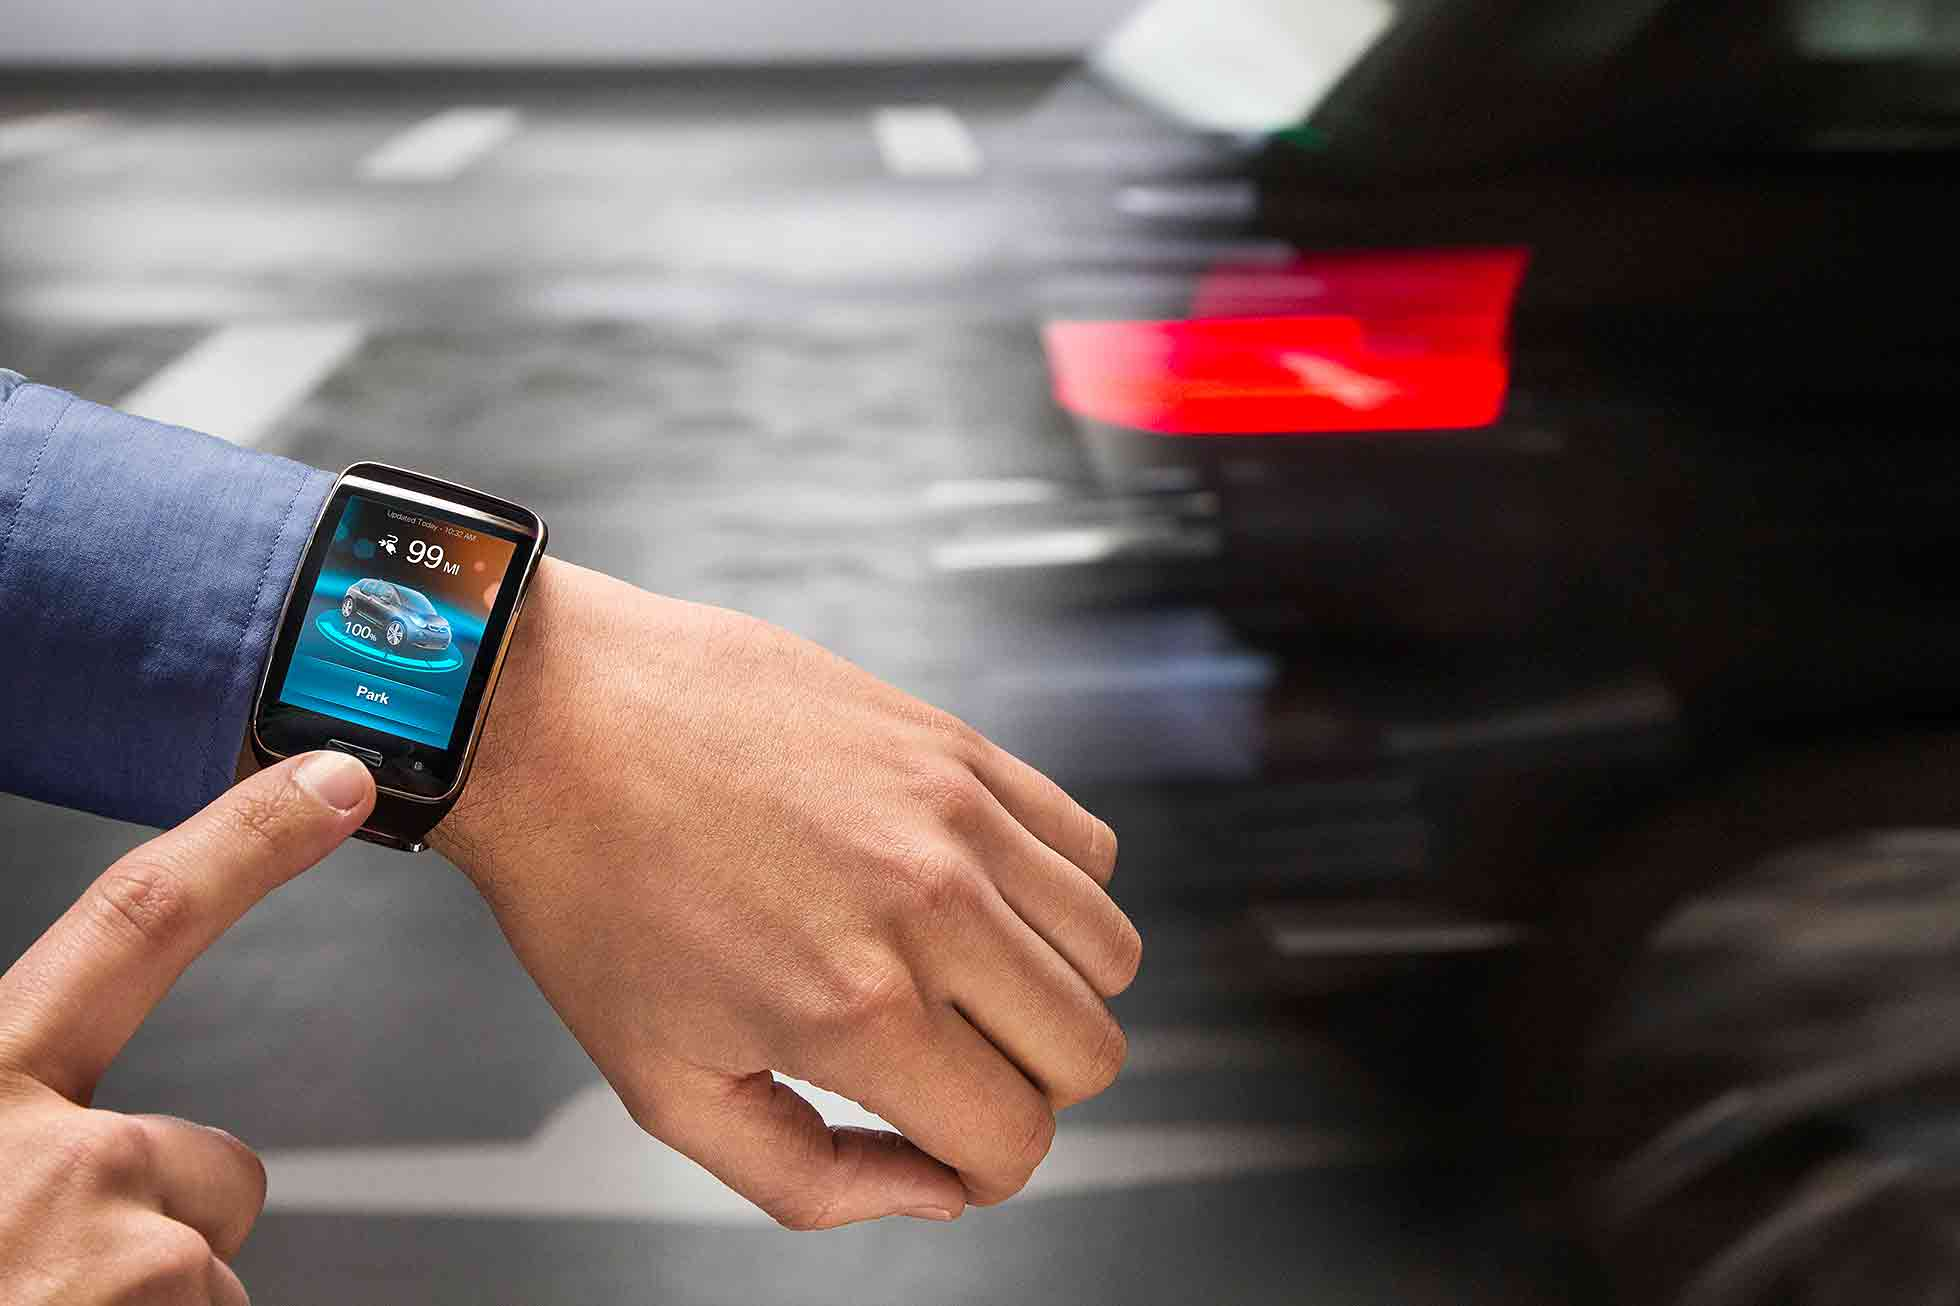 BMW car parking via smartwatch